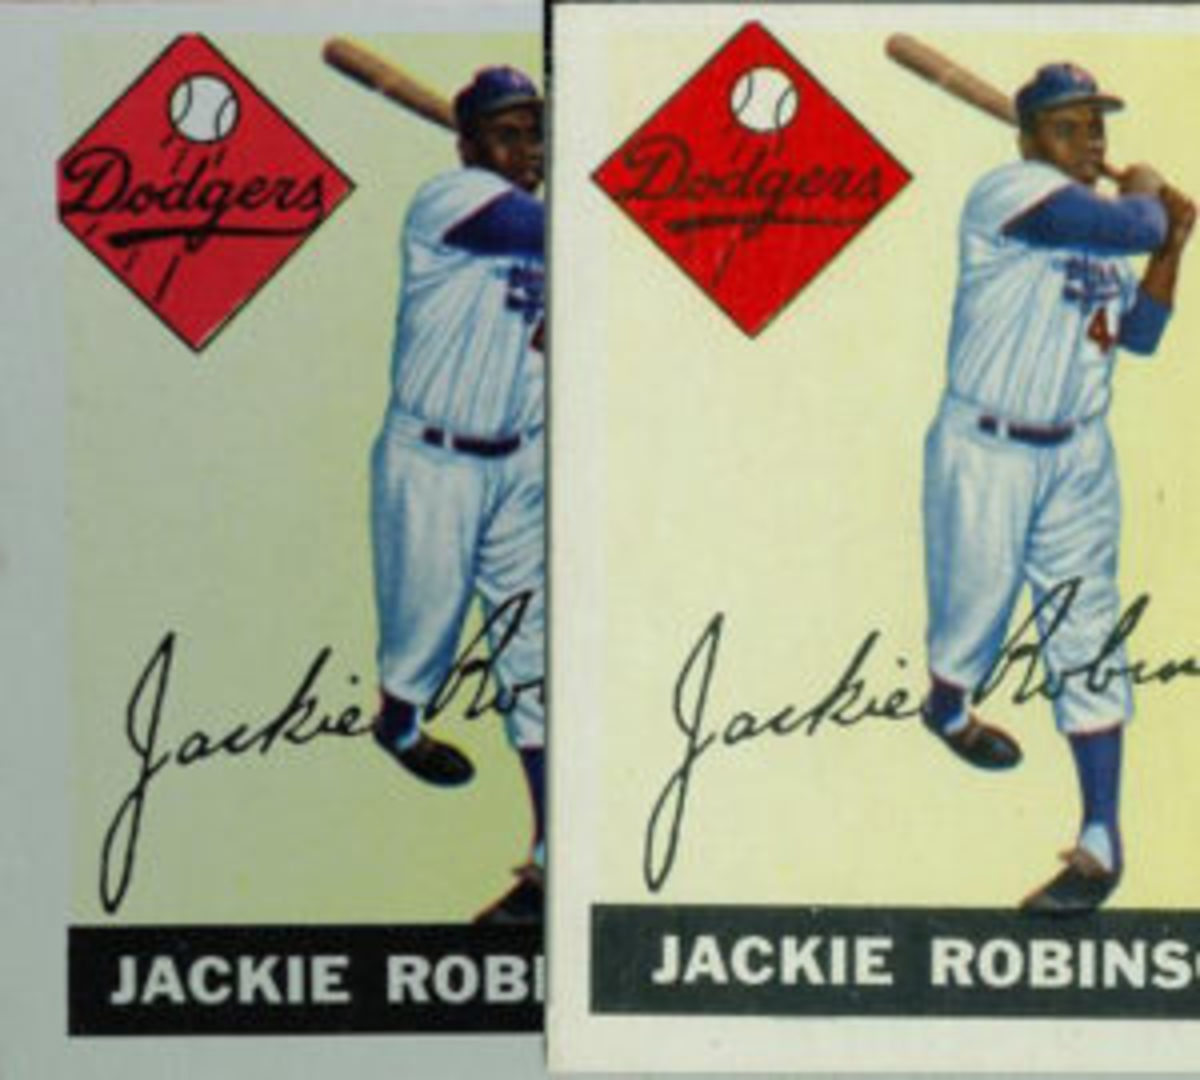 "Like the Wehmeier card, Jackie Robinson's corrected card (right) restores the entire logo and extends his name plate 1/16"" further left."